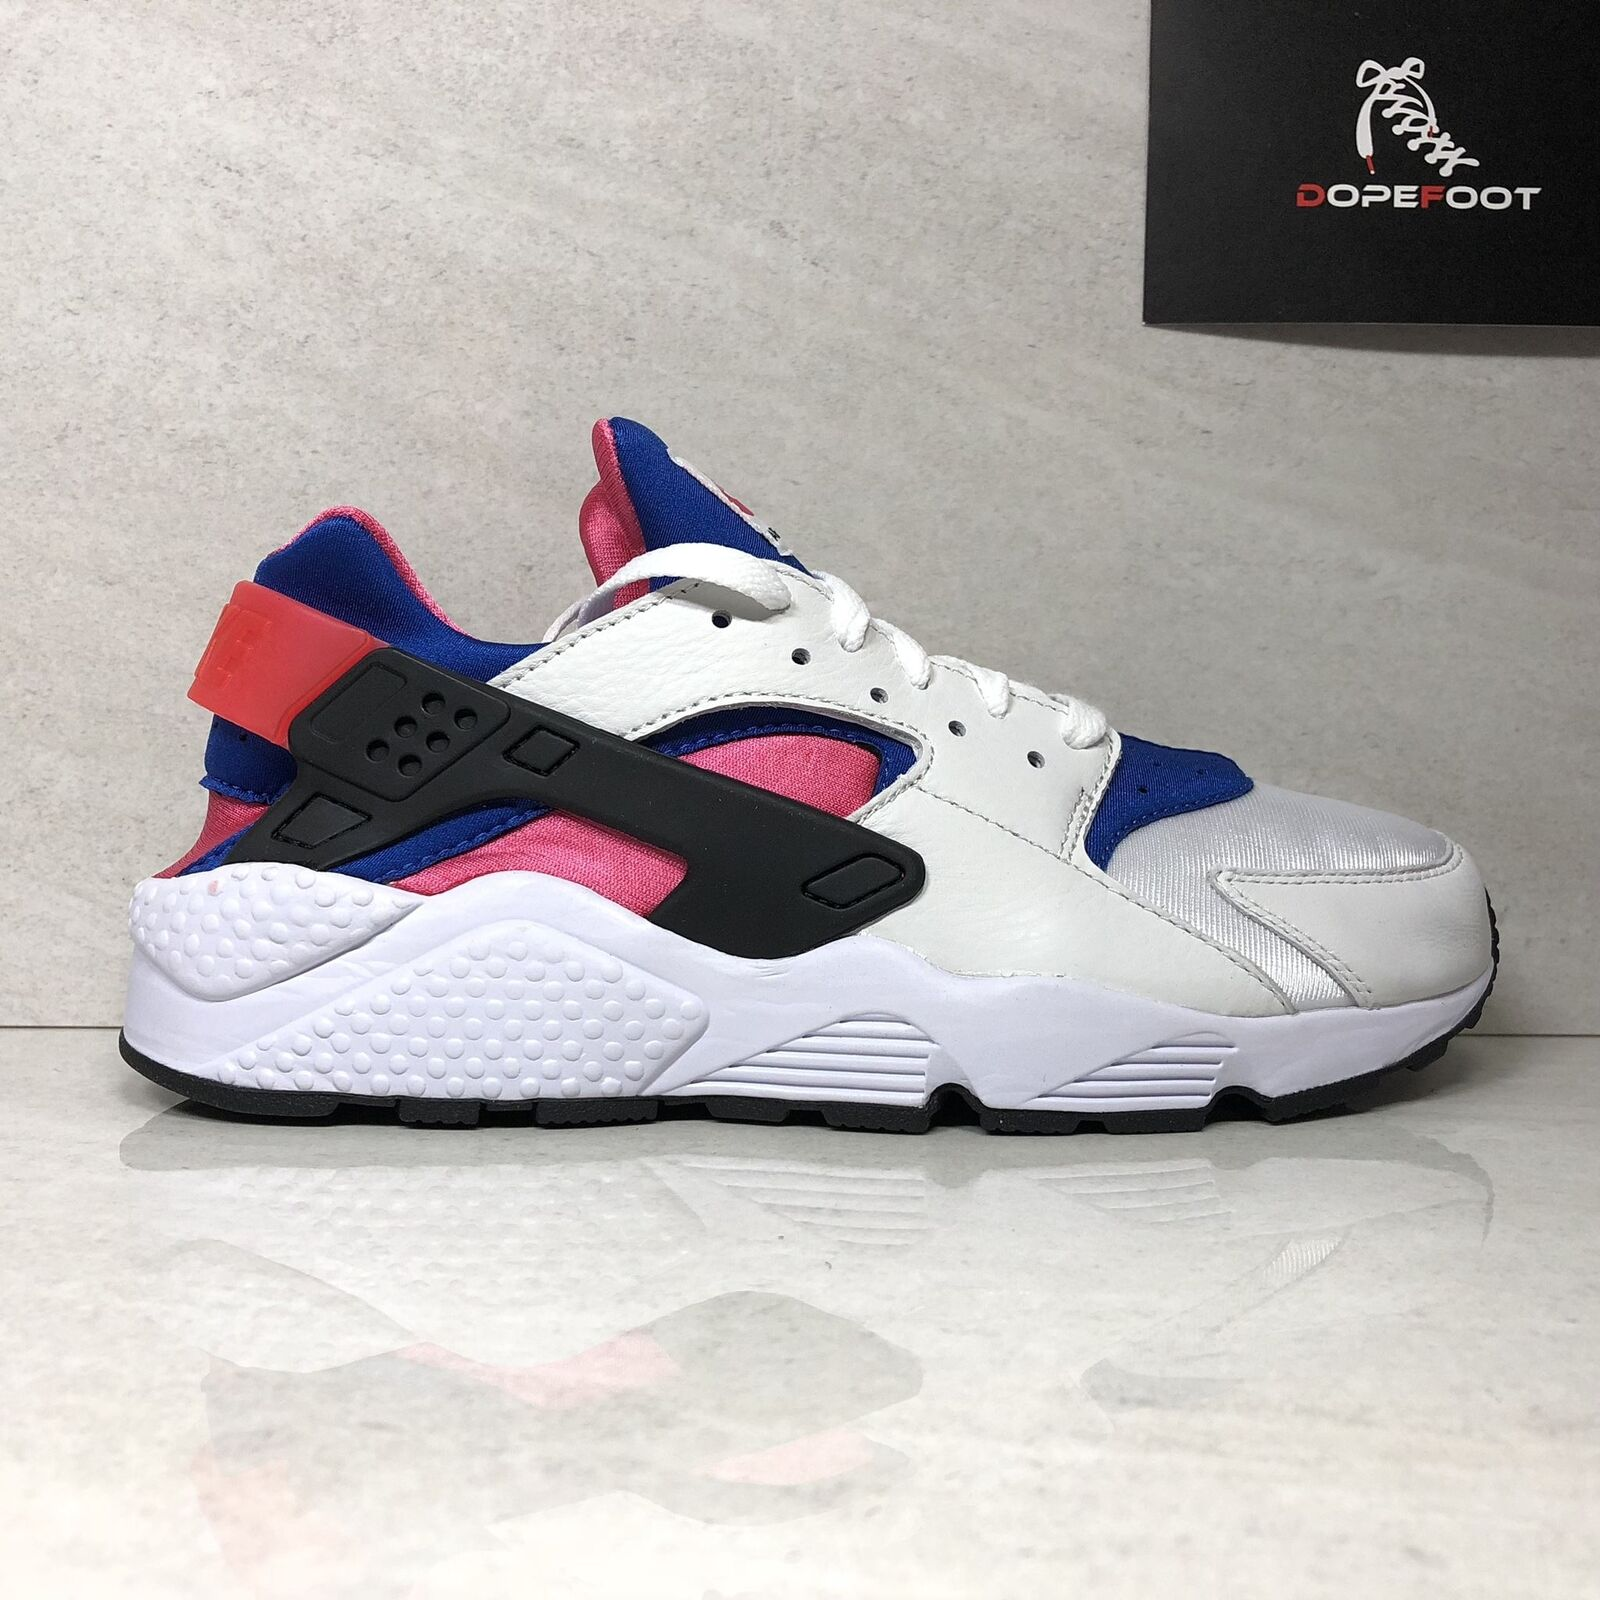 Nike Air Huarache Run 91 QS AH8049 100 Men's Size 9.5 Size 11.5 White Game Royal